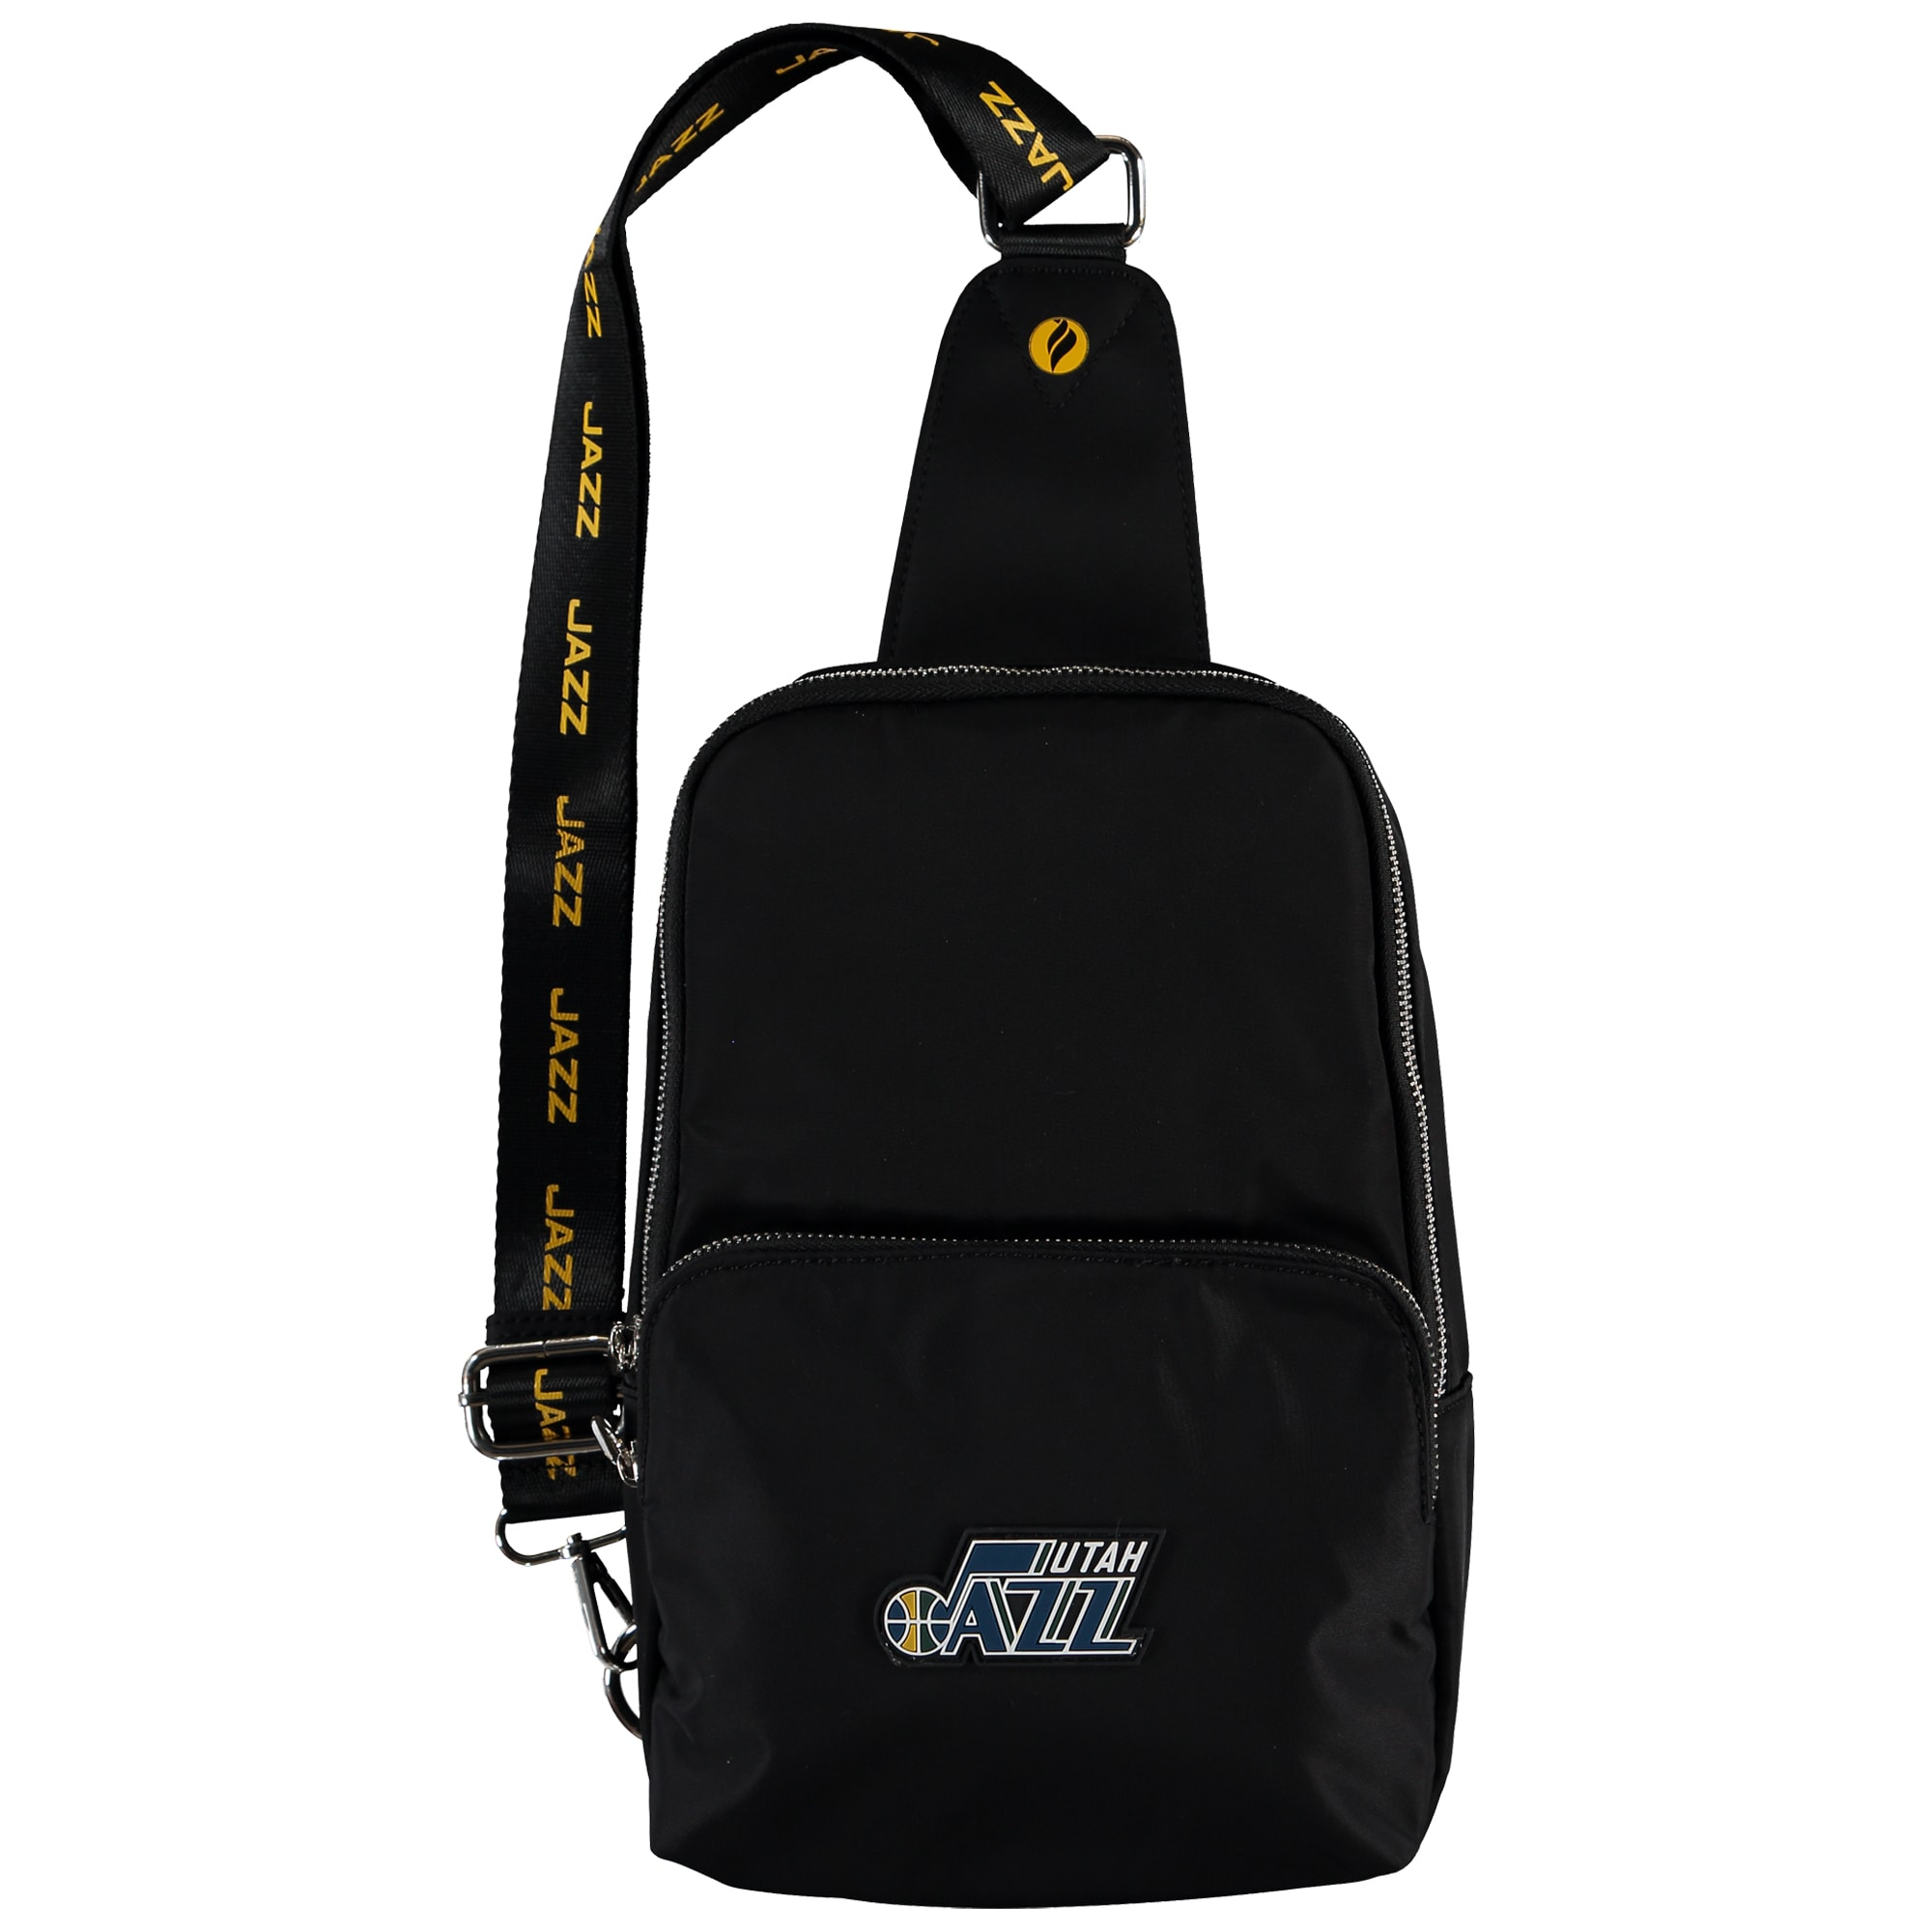 Utah Jazz Mini Backpack